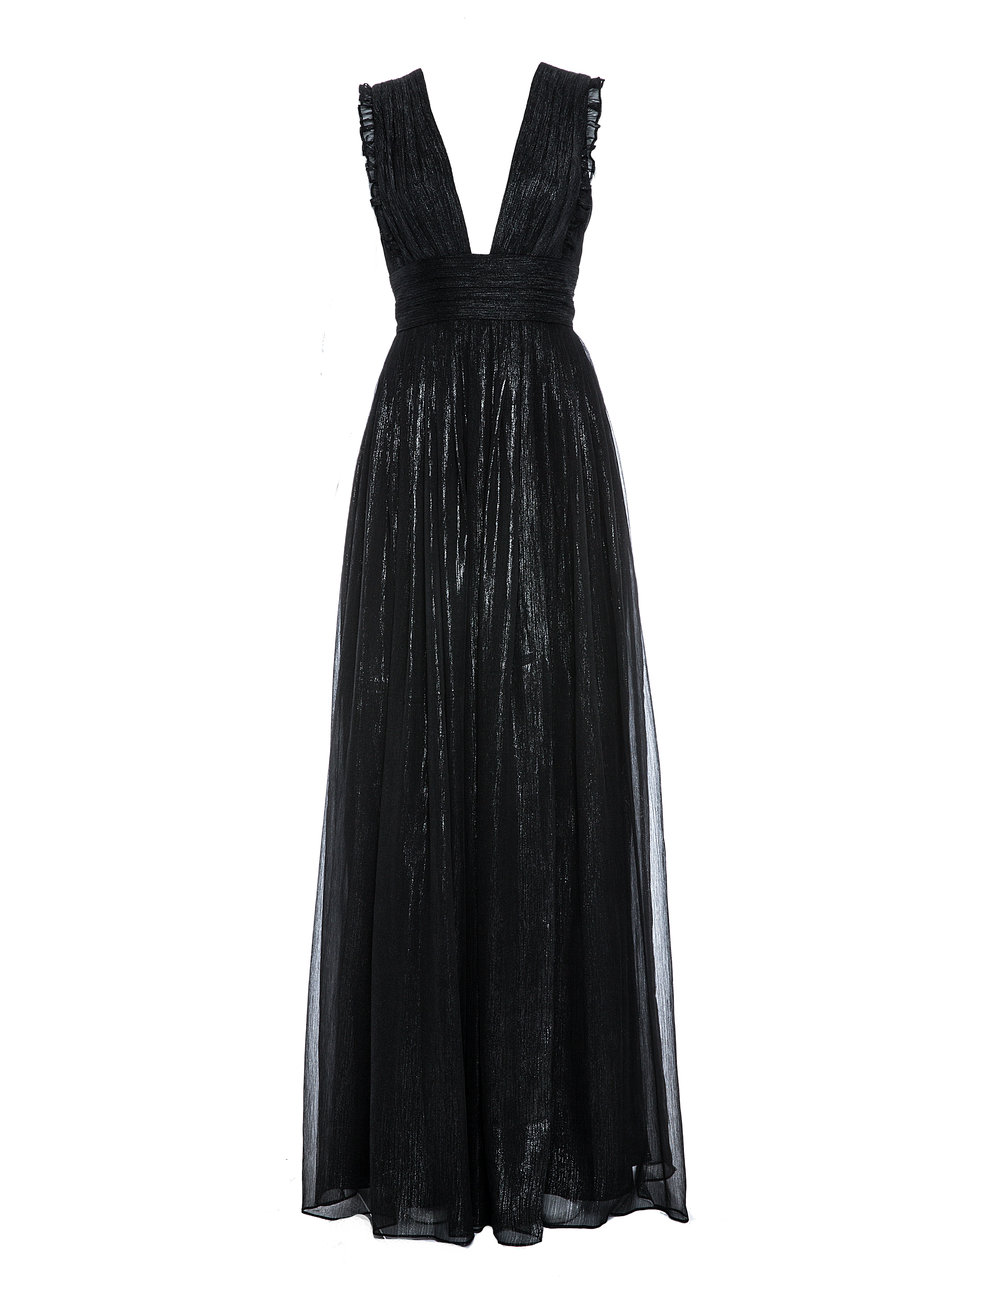 Monique Lhuillier 450425 Charcoal Metallic Chiffon